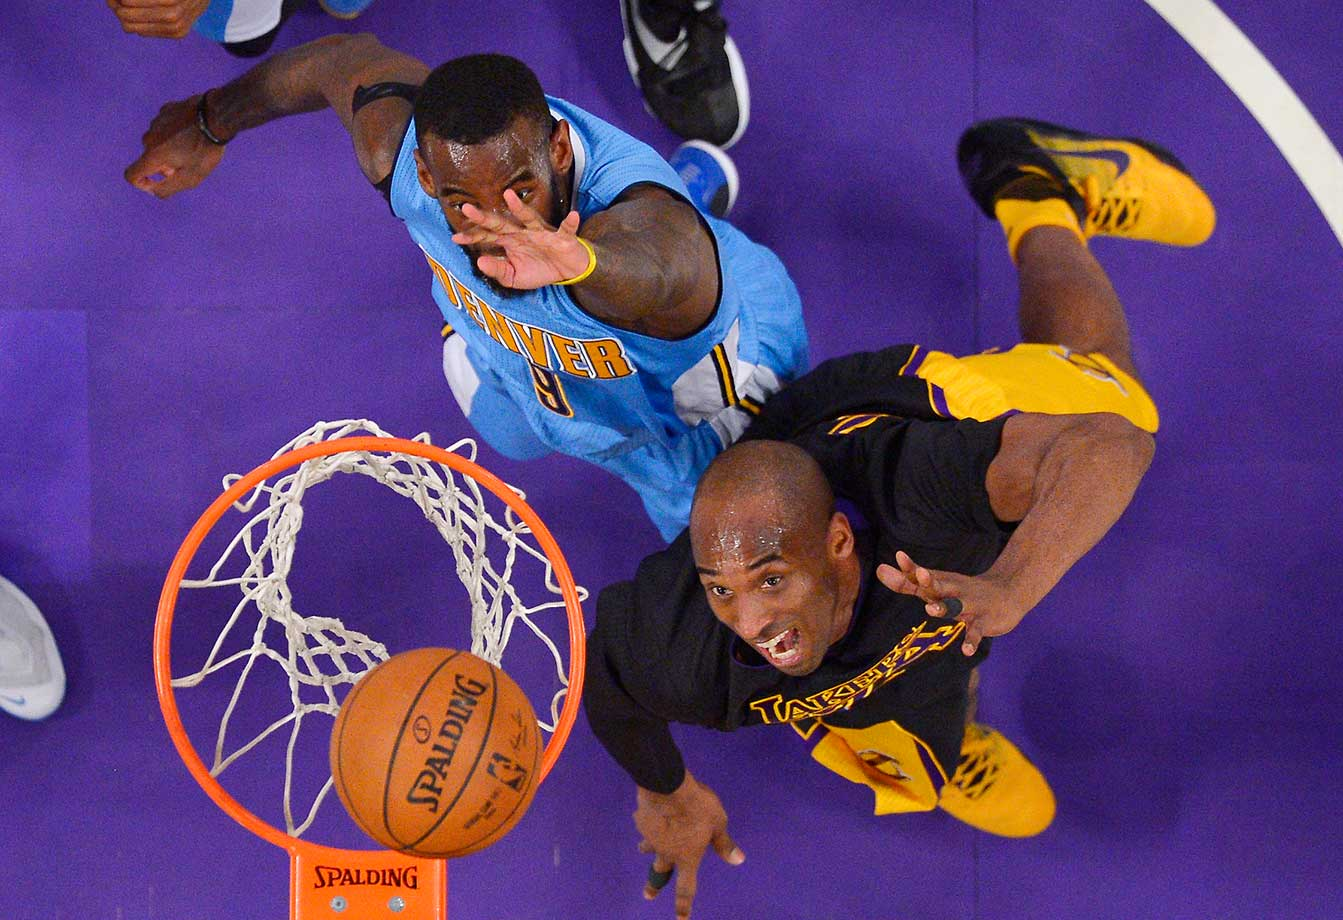 Lakers forward Kobe Bryant shoots as Denver Nuggets guard JaKarr Sampson defends.